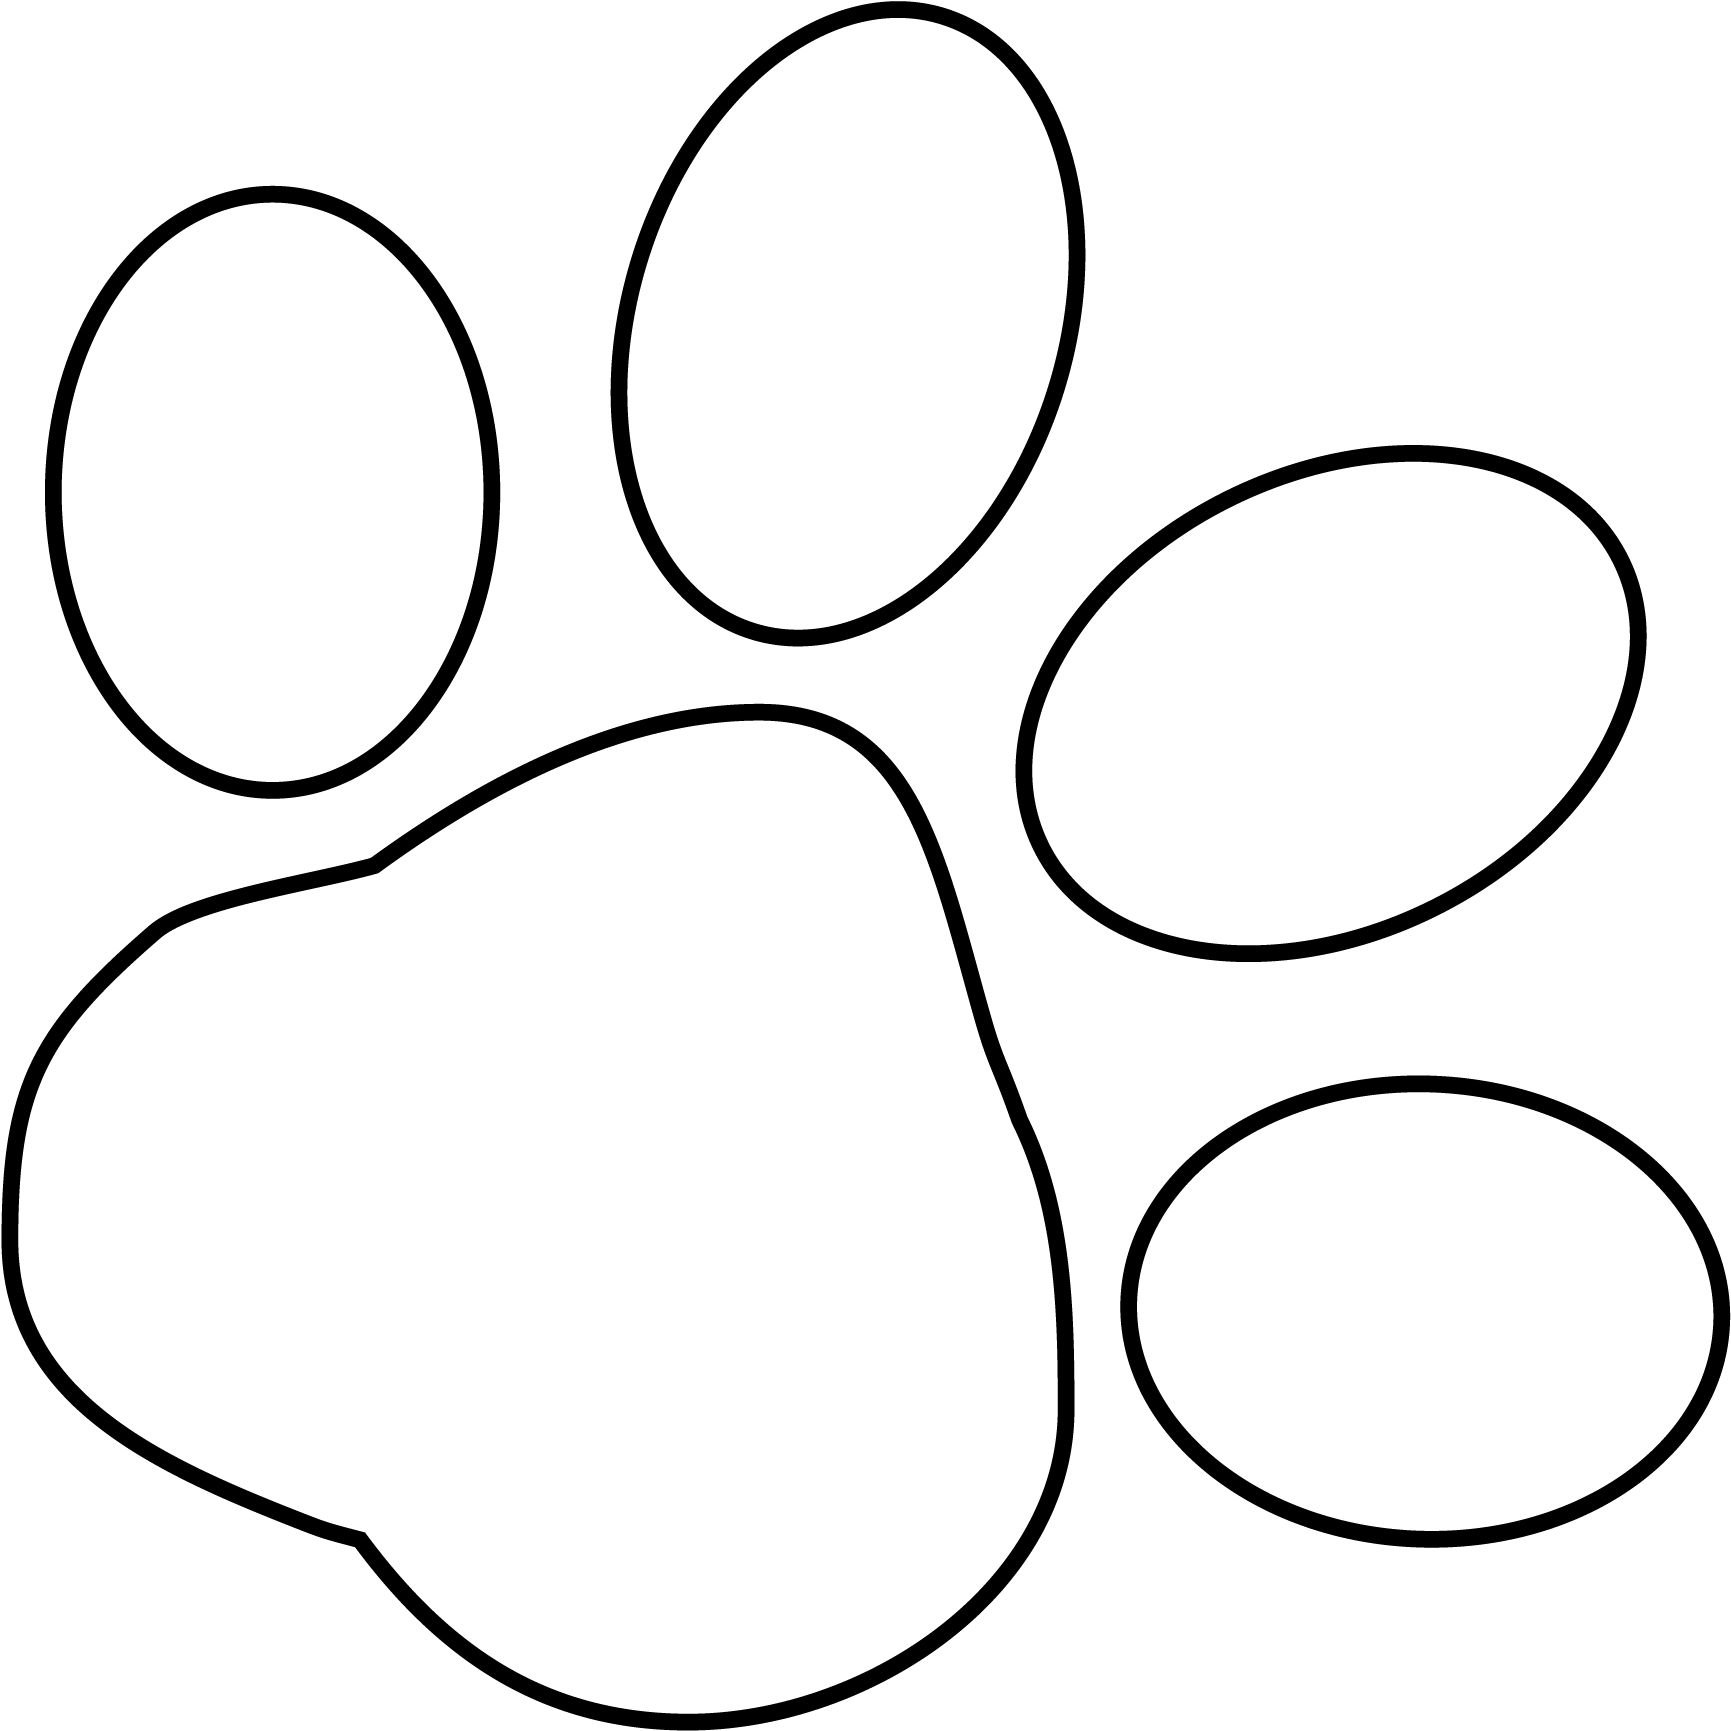 Wolf Paw Print Png White Paw Print Transparent Background 36293 Vippng This high quality free png image without any background is about dog, pet, cat, puppy, animal, print and paw. wolf paw print png white paw print